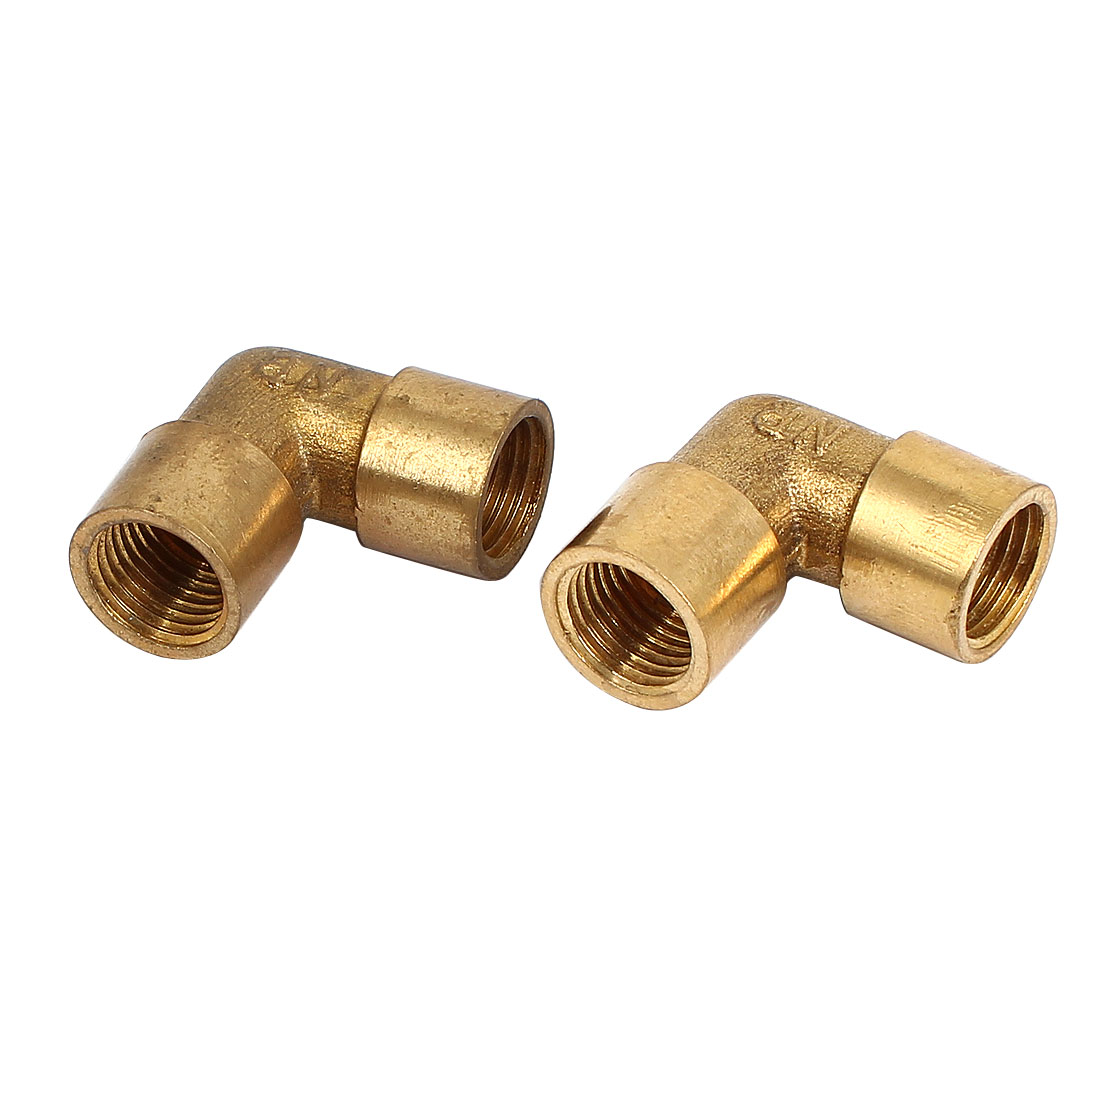 1/4BSP x 1/4BSP F/F 90 Degree Equal Female Elbow Pipe Coupler Connector 2pcs